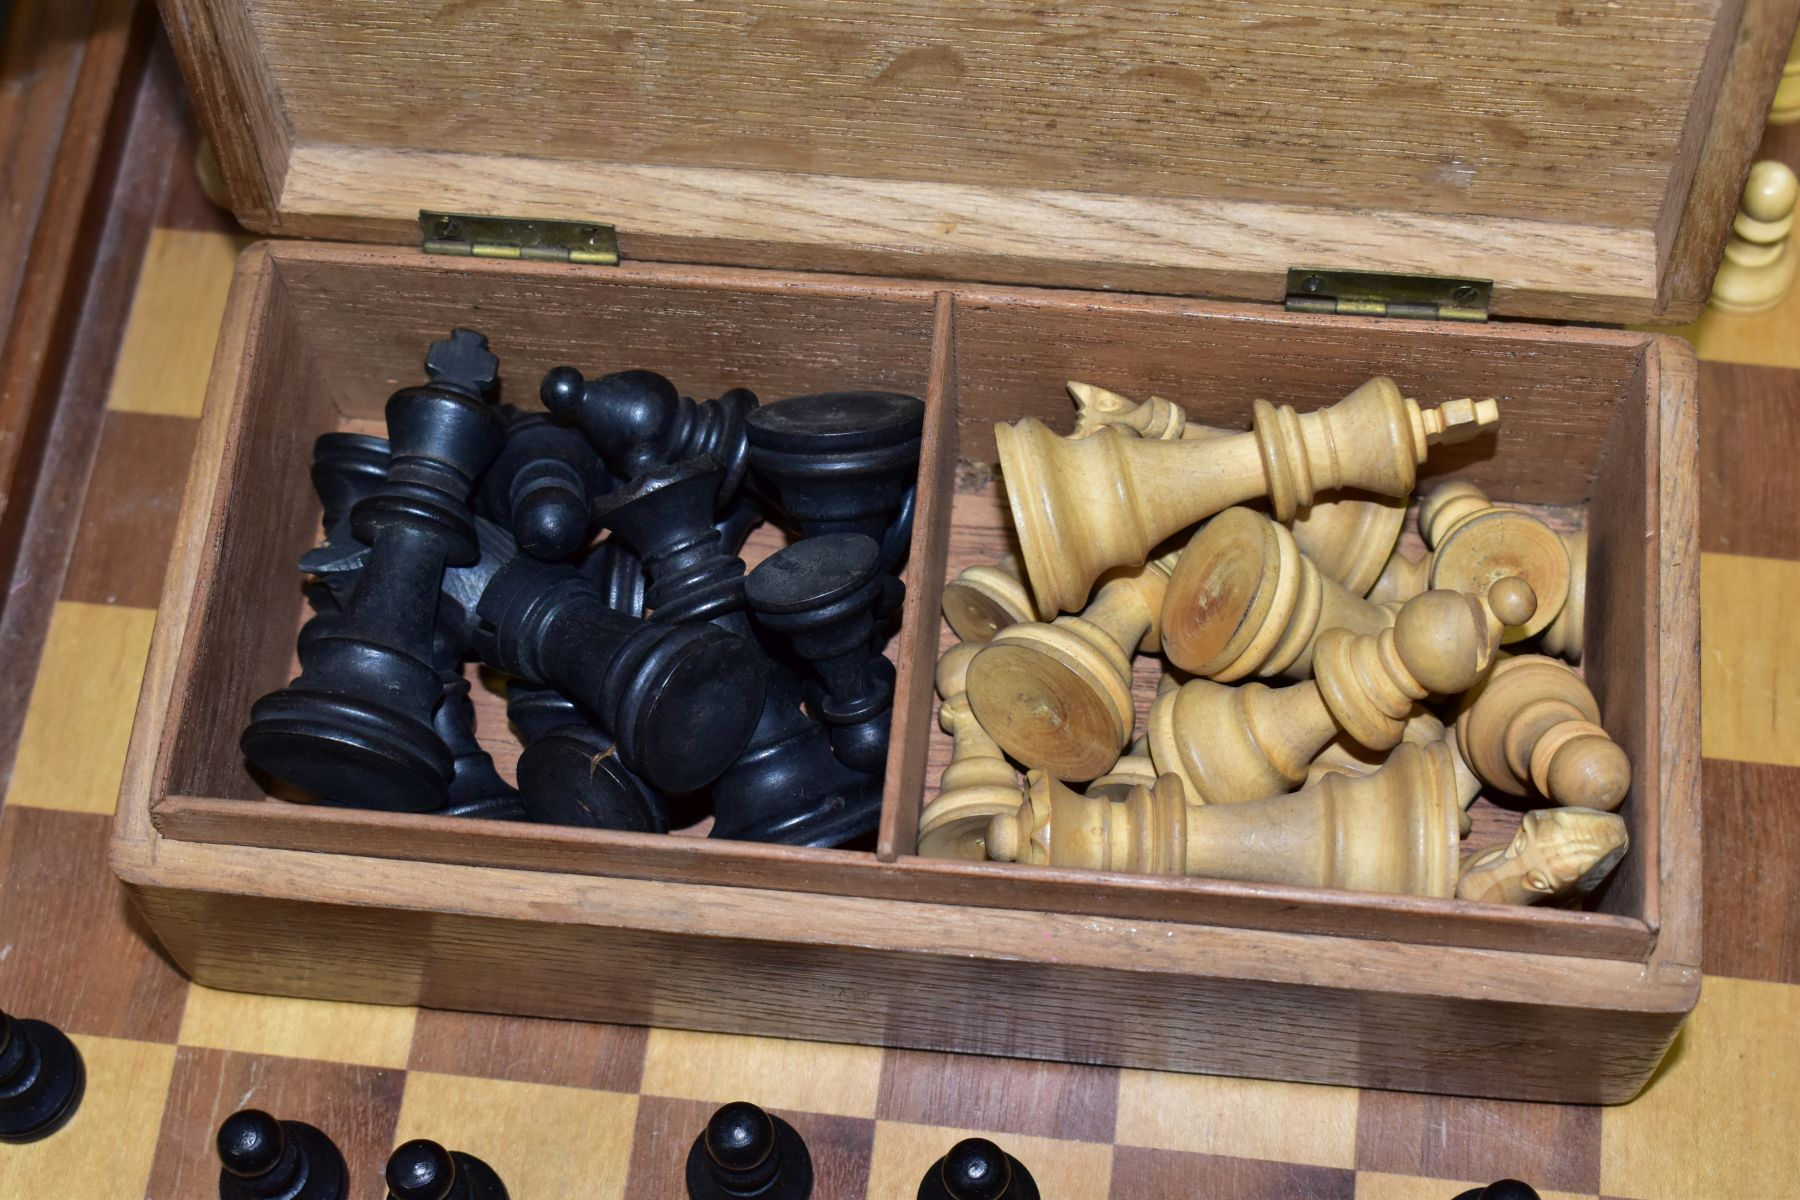 A MID 20TH CENTURY WOODEN CHESS BOARD AND CHESS PIECES, the board with lift off top opening to - Image 3 of 4